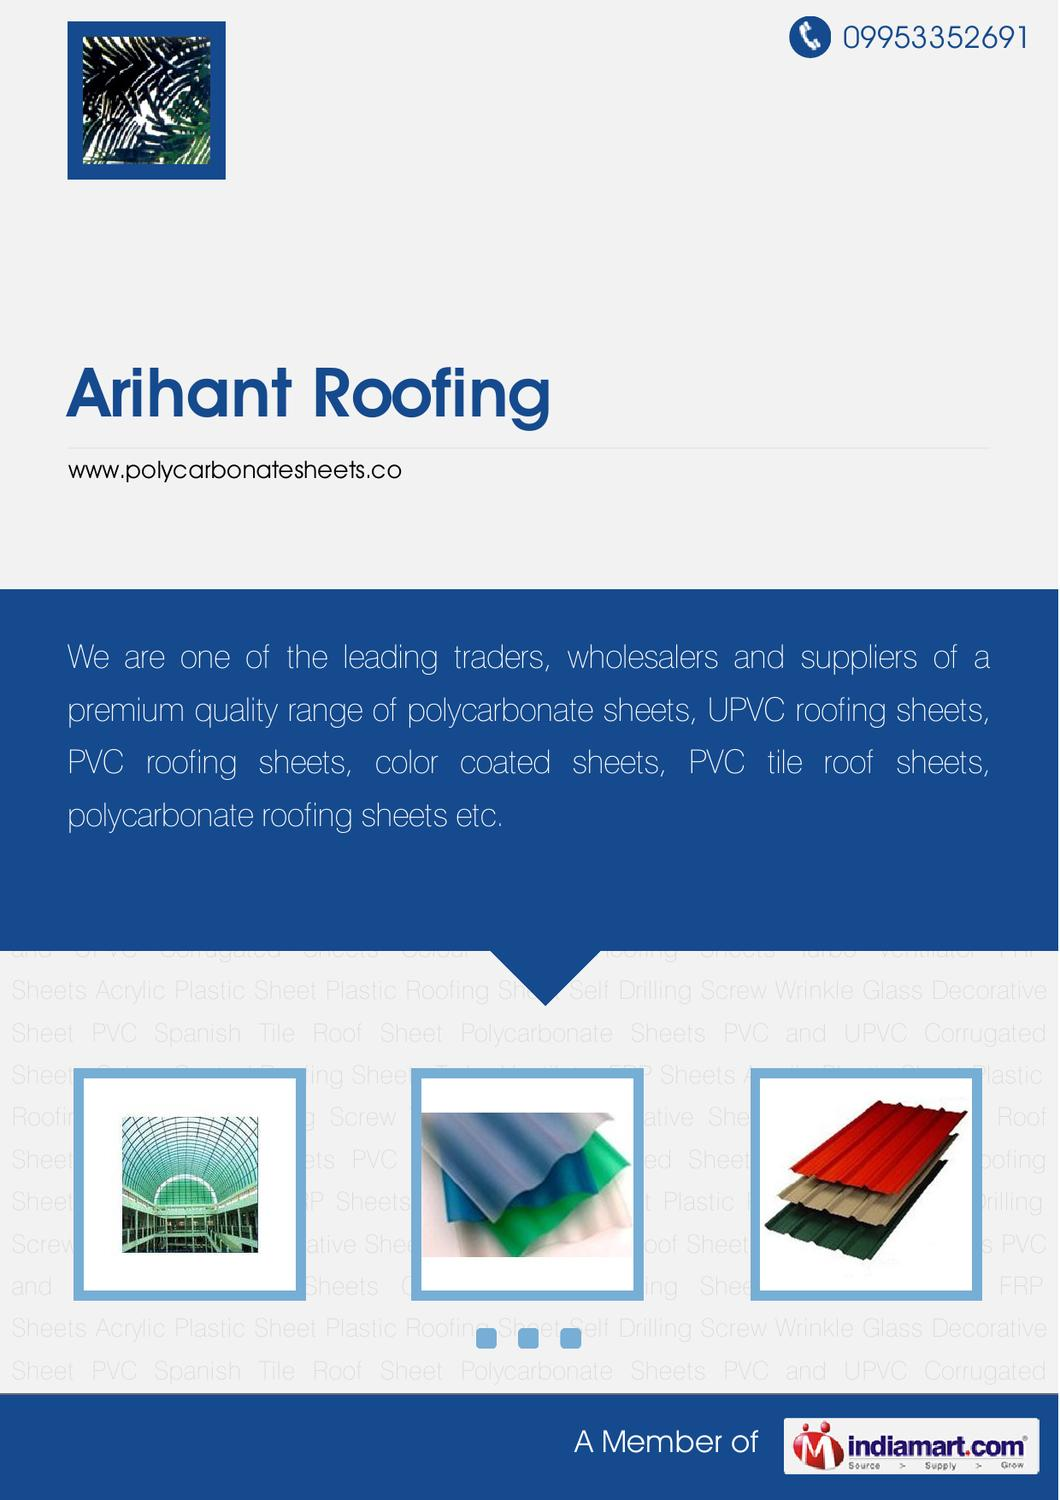 PVC and UPVC Corrugated Sheets By Arihant roofing by Arihant